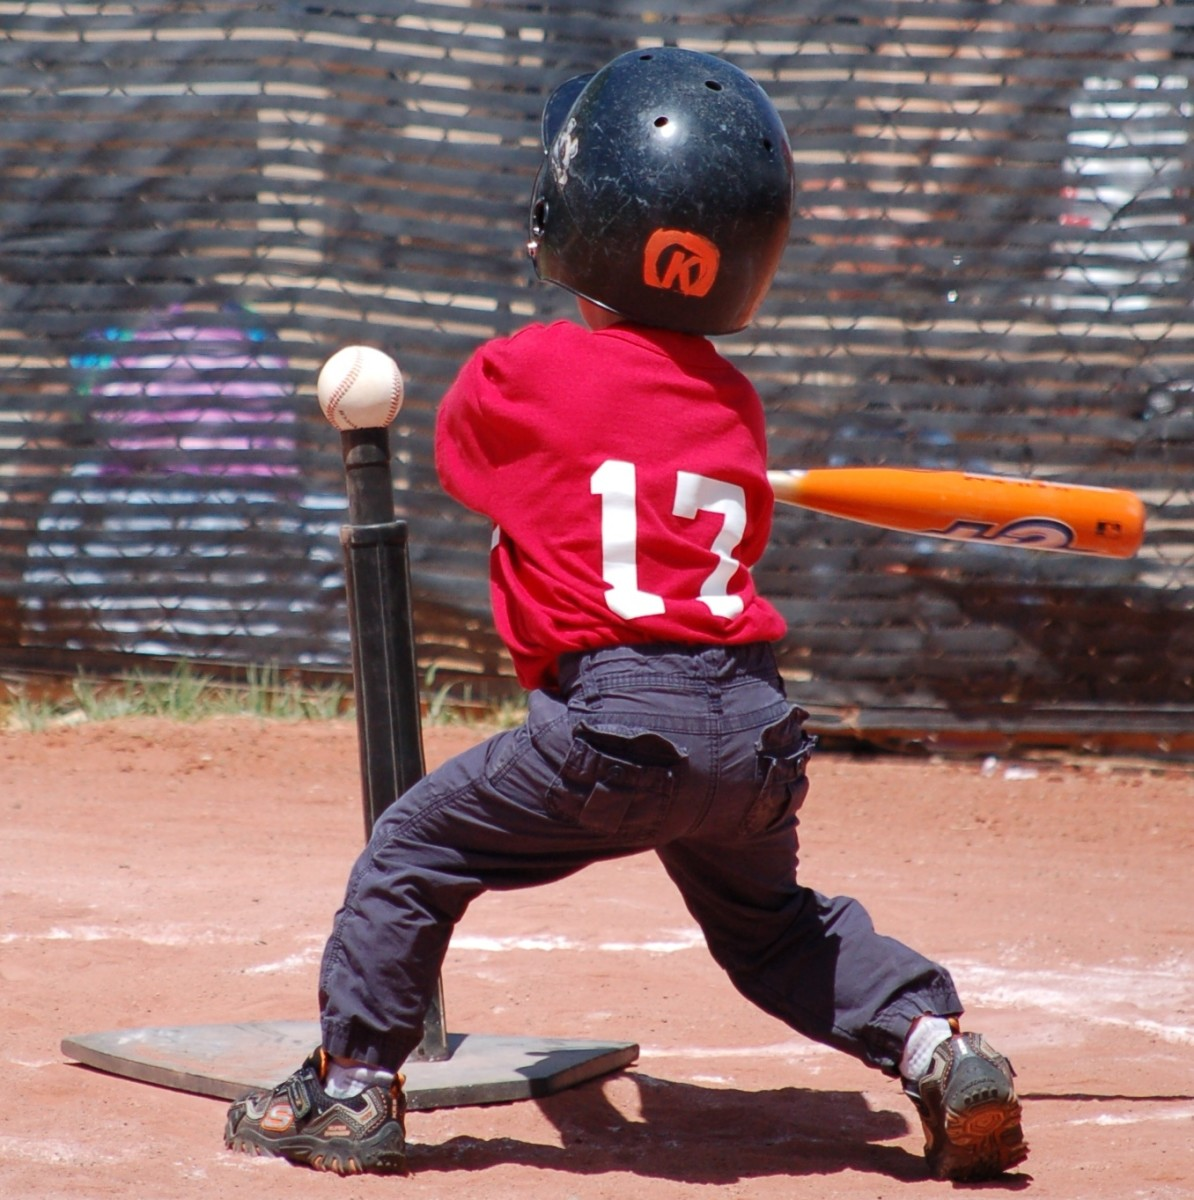 Tee Ball Introduce Baseball to Younger Children